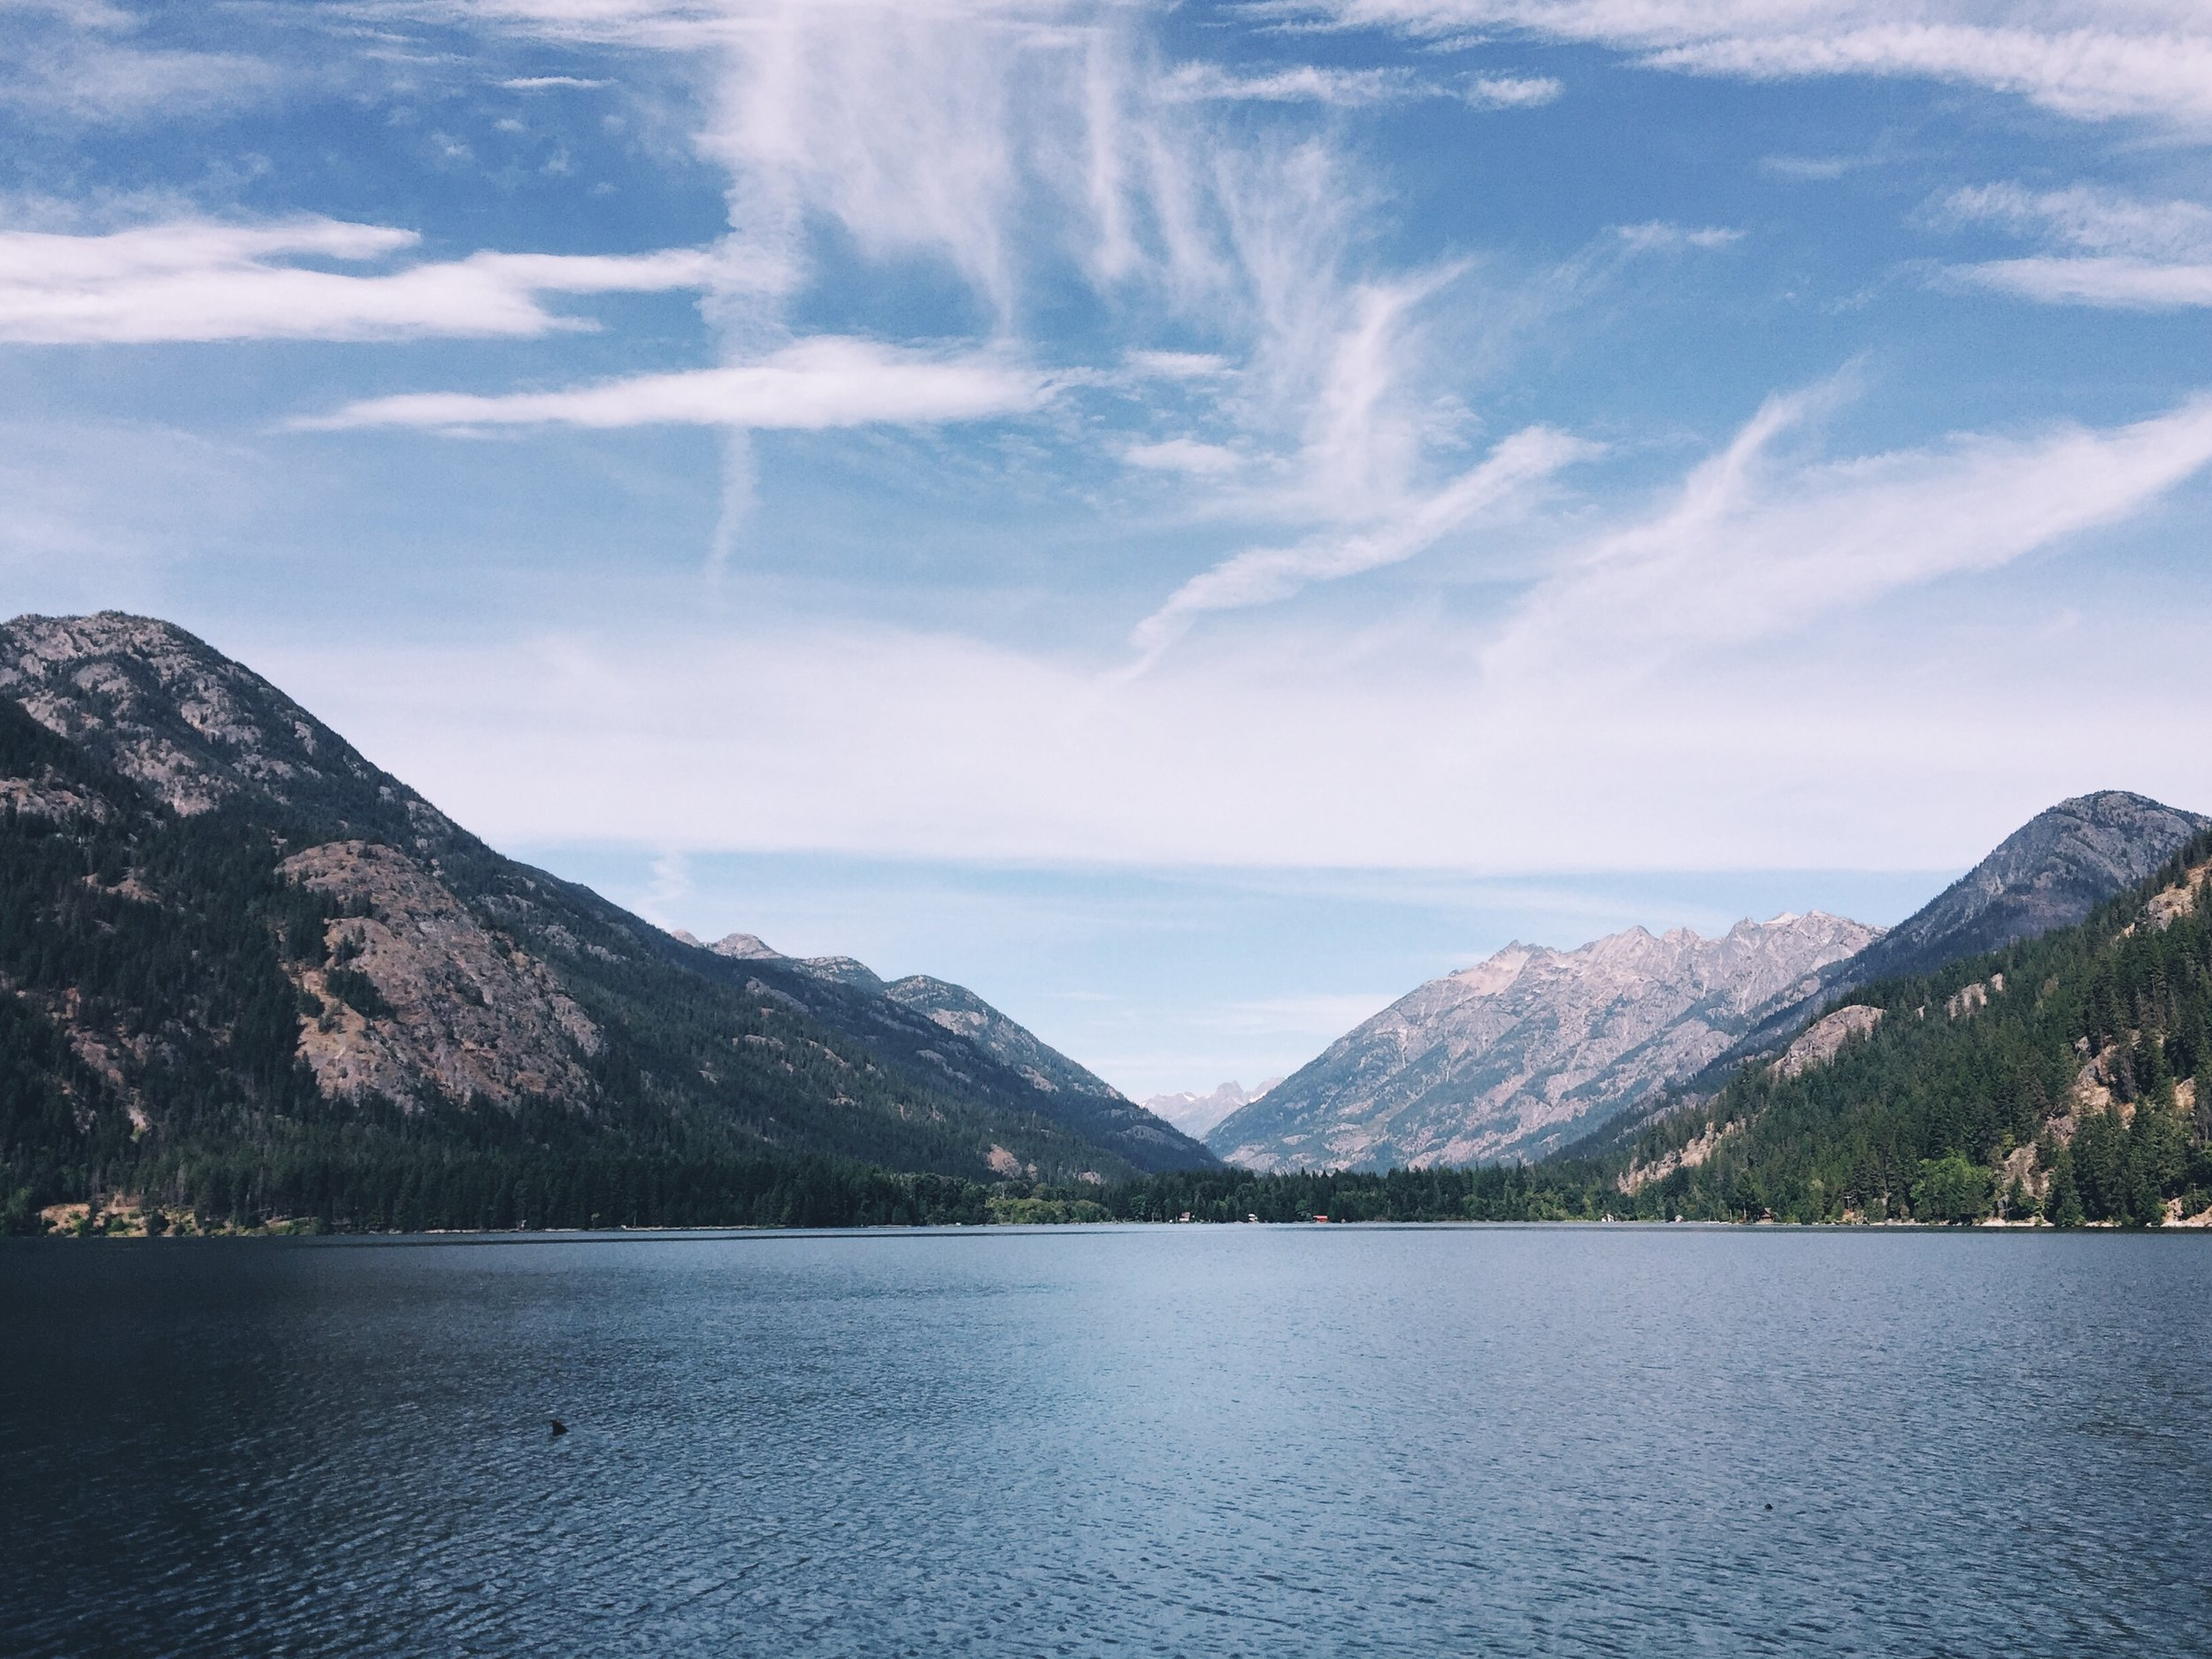 Stehekin. So peaceful.